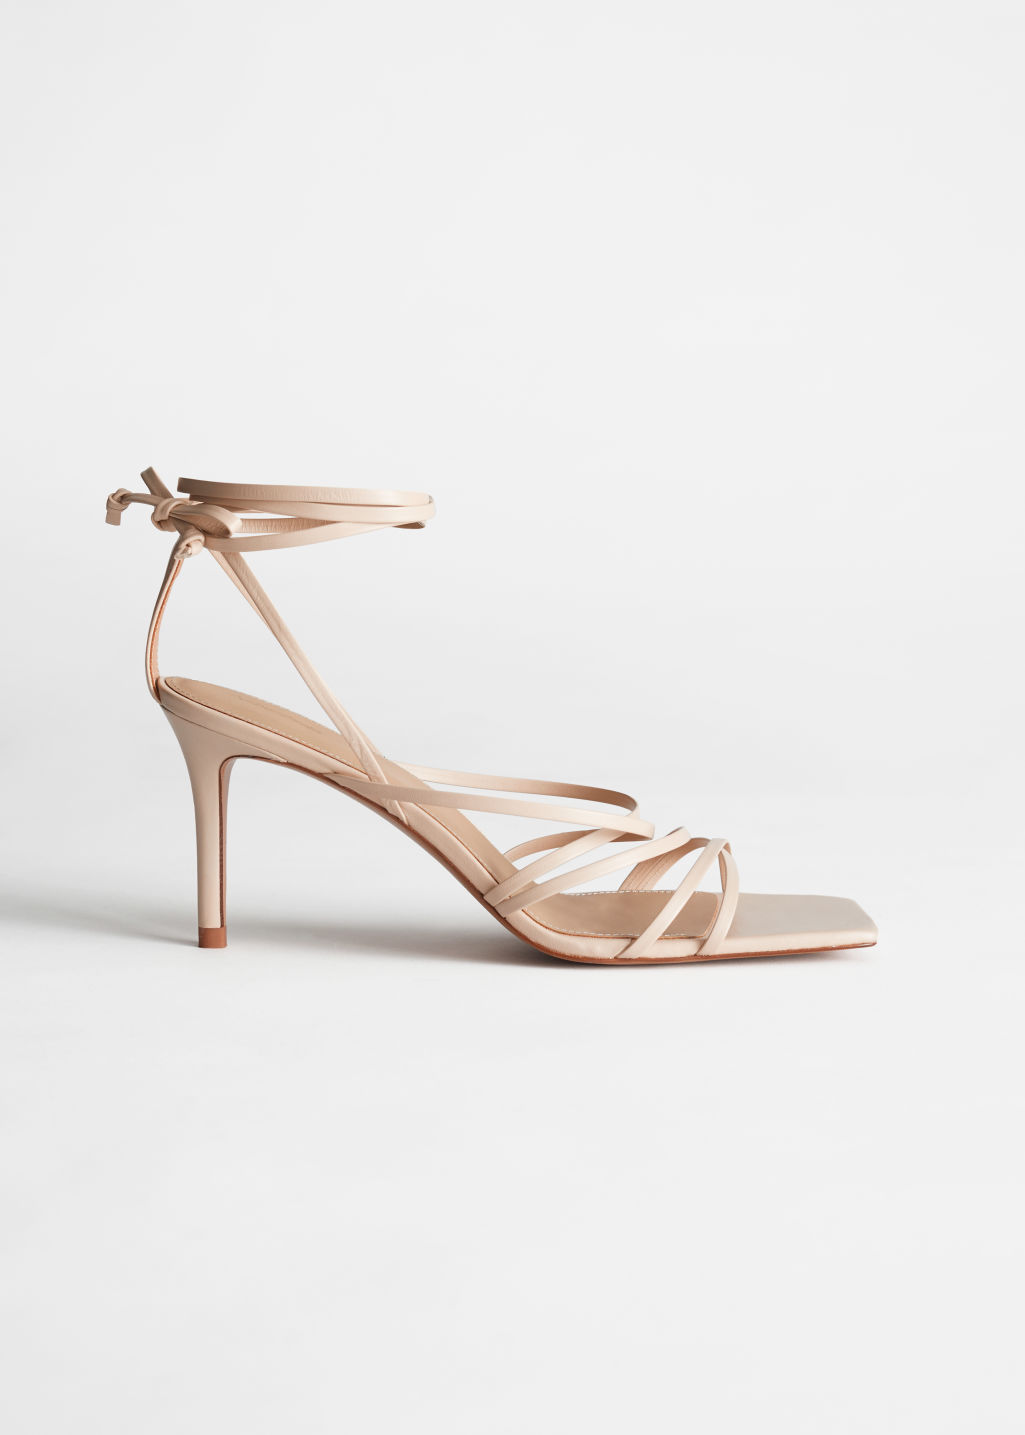 StillLife Side Image of Stories Square Toe Leather Heeled Sandals in Beige